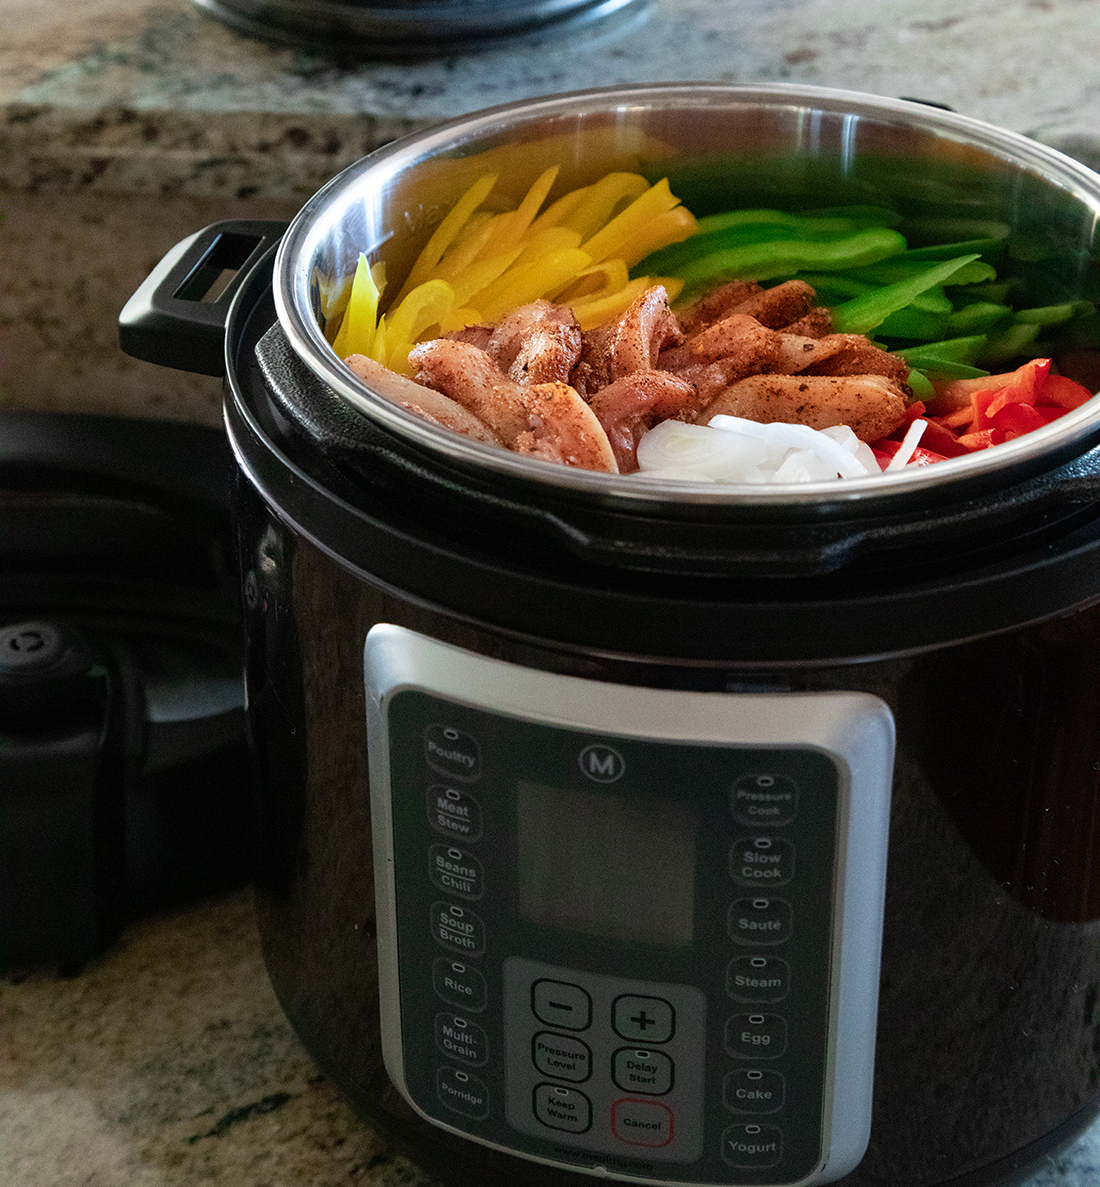 A pressure cooker filled with onions, chicken and red, green and yellow peppers.